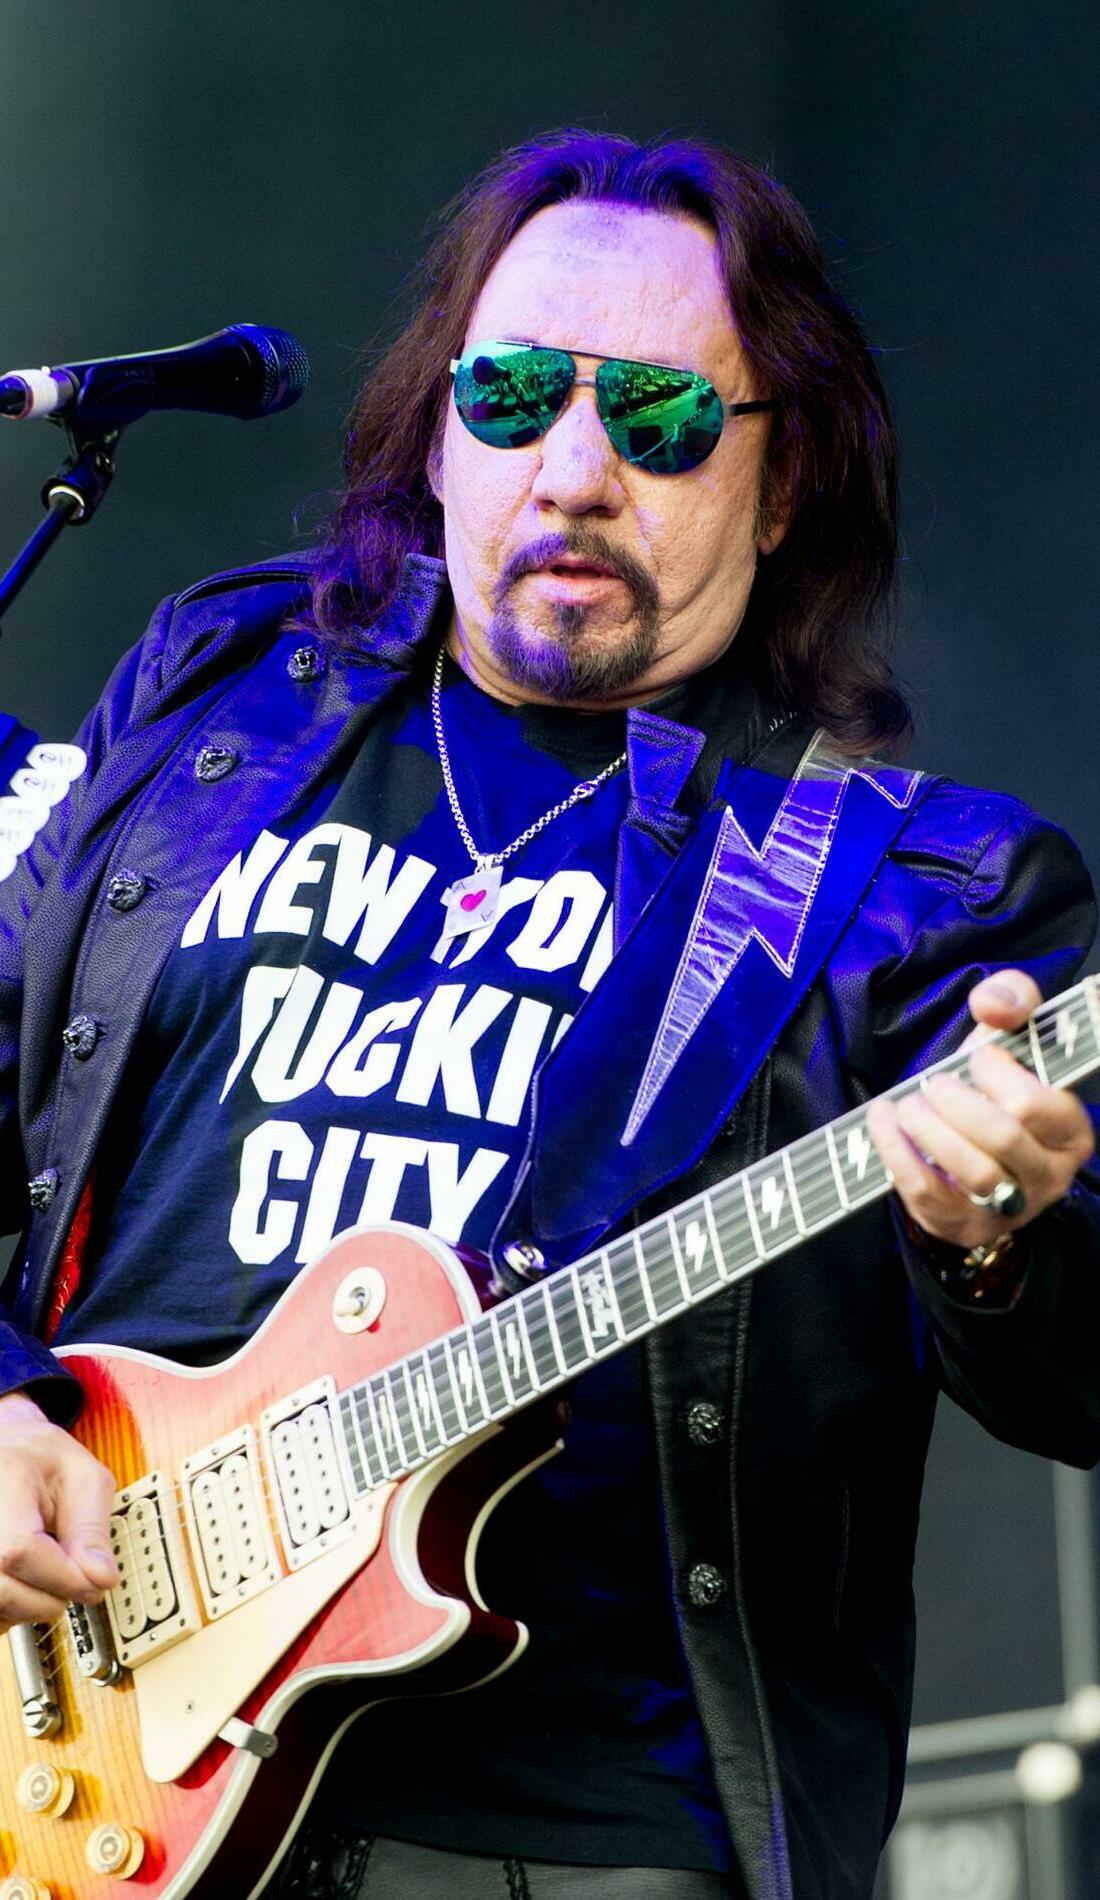 A Ace Frehley live event